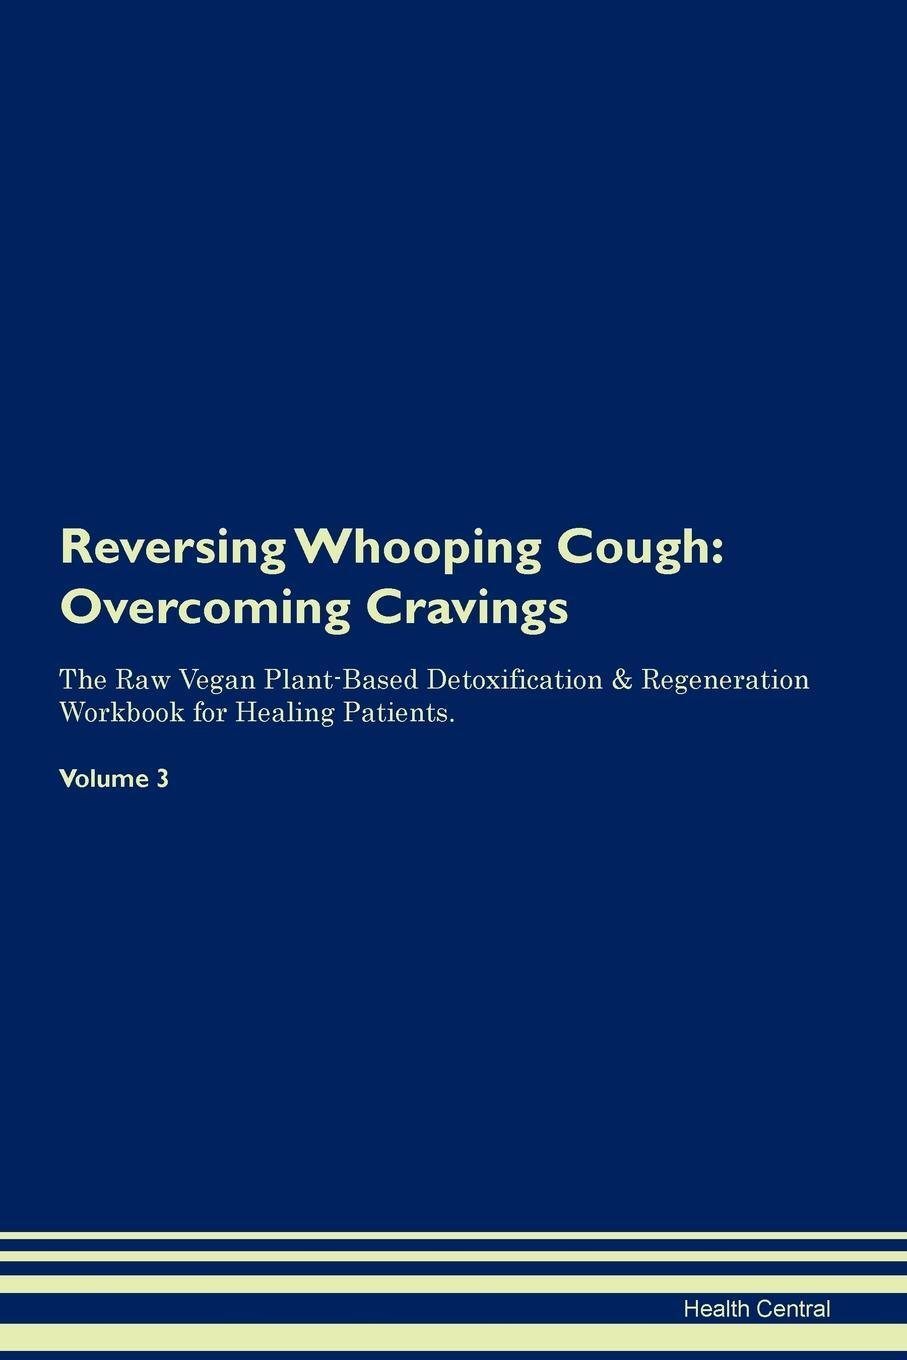 Reversing Whooping Cough. Overcoming Cravings The Raw Vegan Plant-Based Detoxification & Regeneration Workbook for Healing Patients. Volume 3